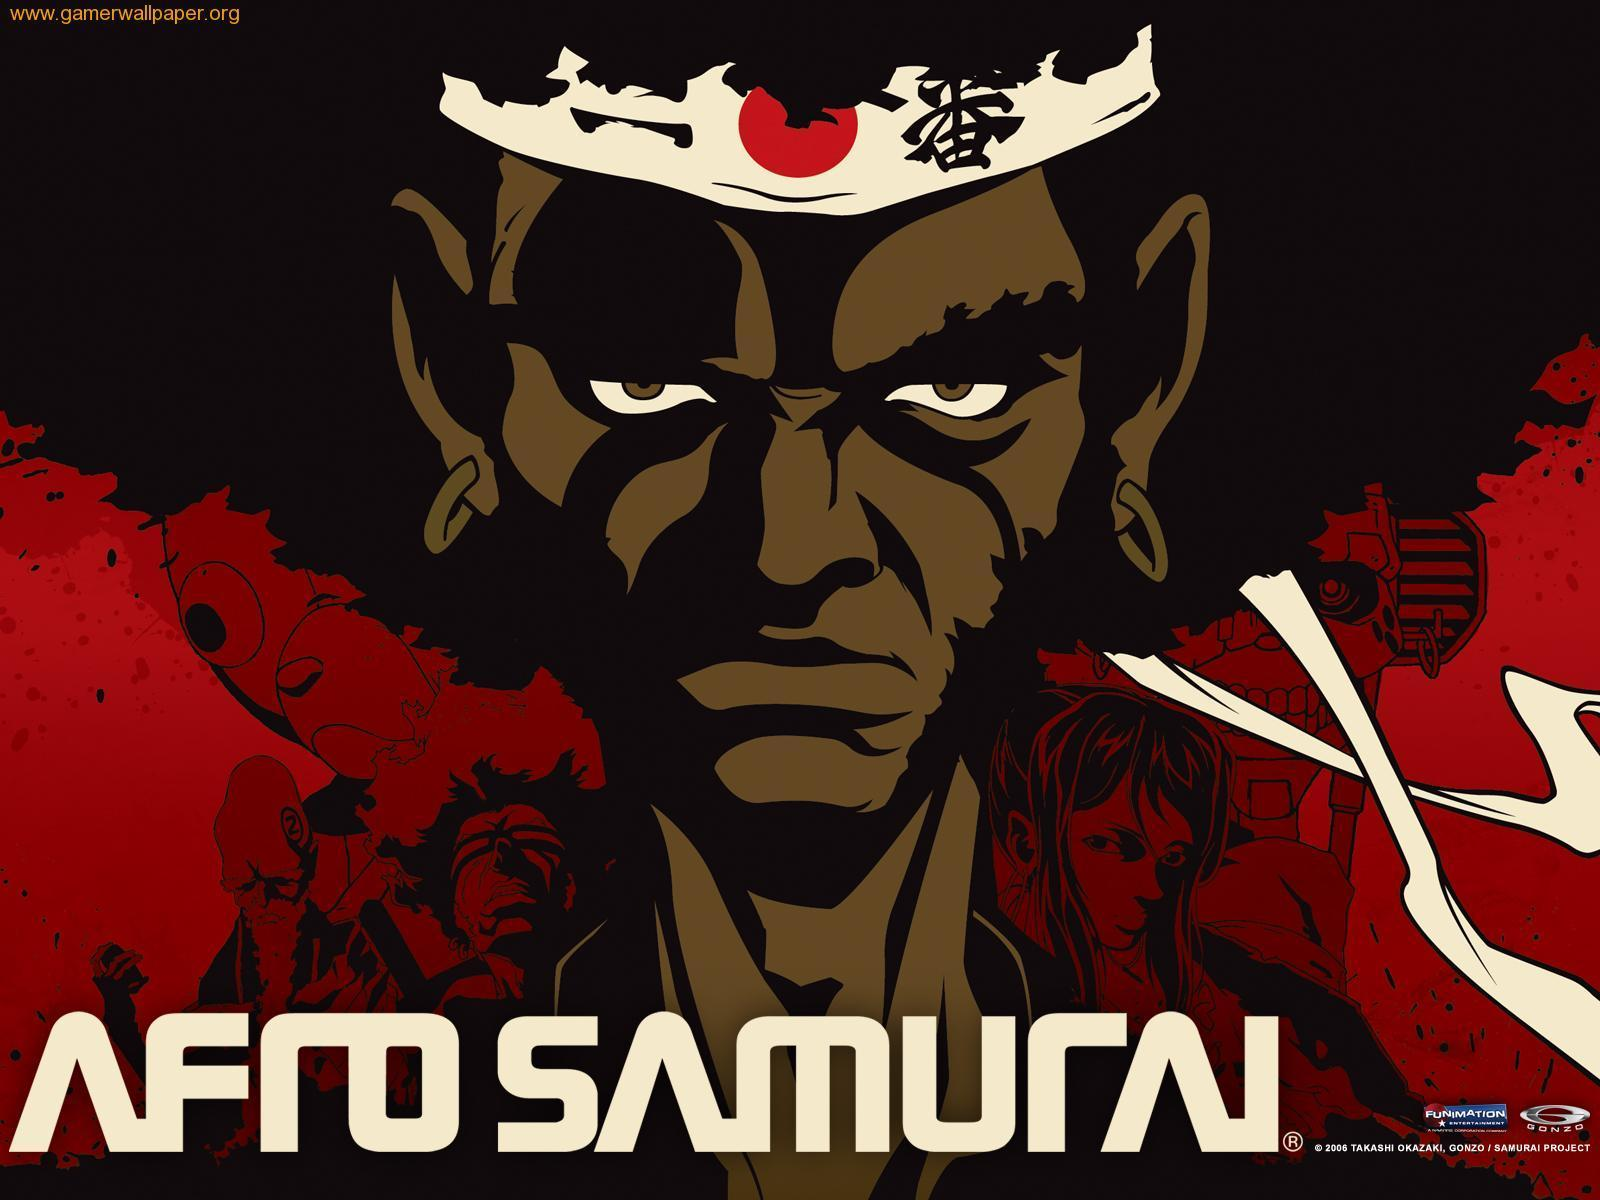 Afro Samurai. Note the physical and stylistic similarities between the two characters.